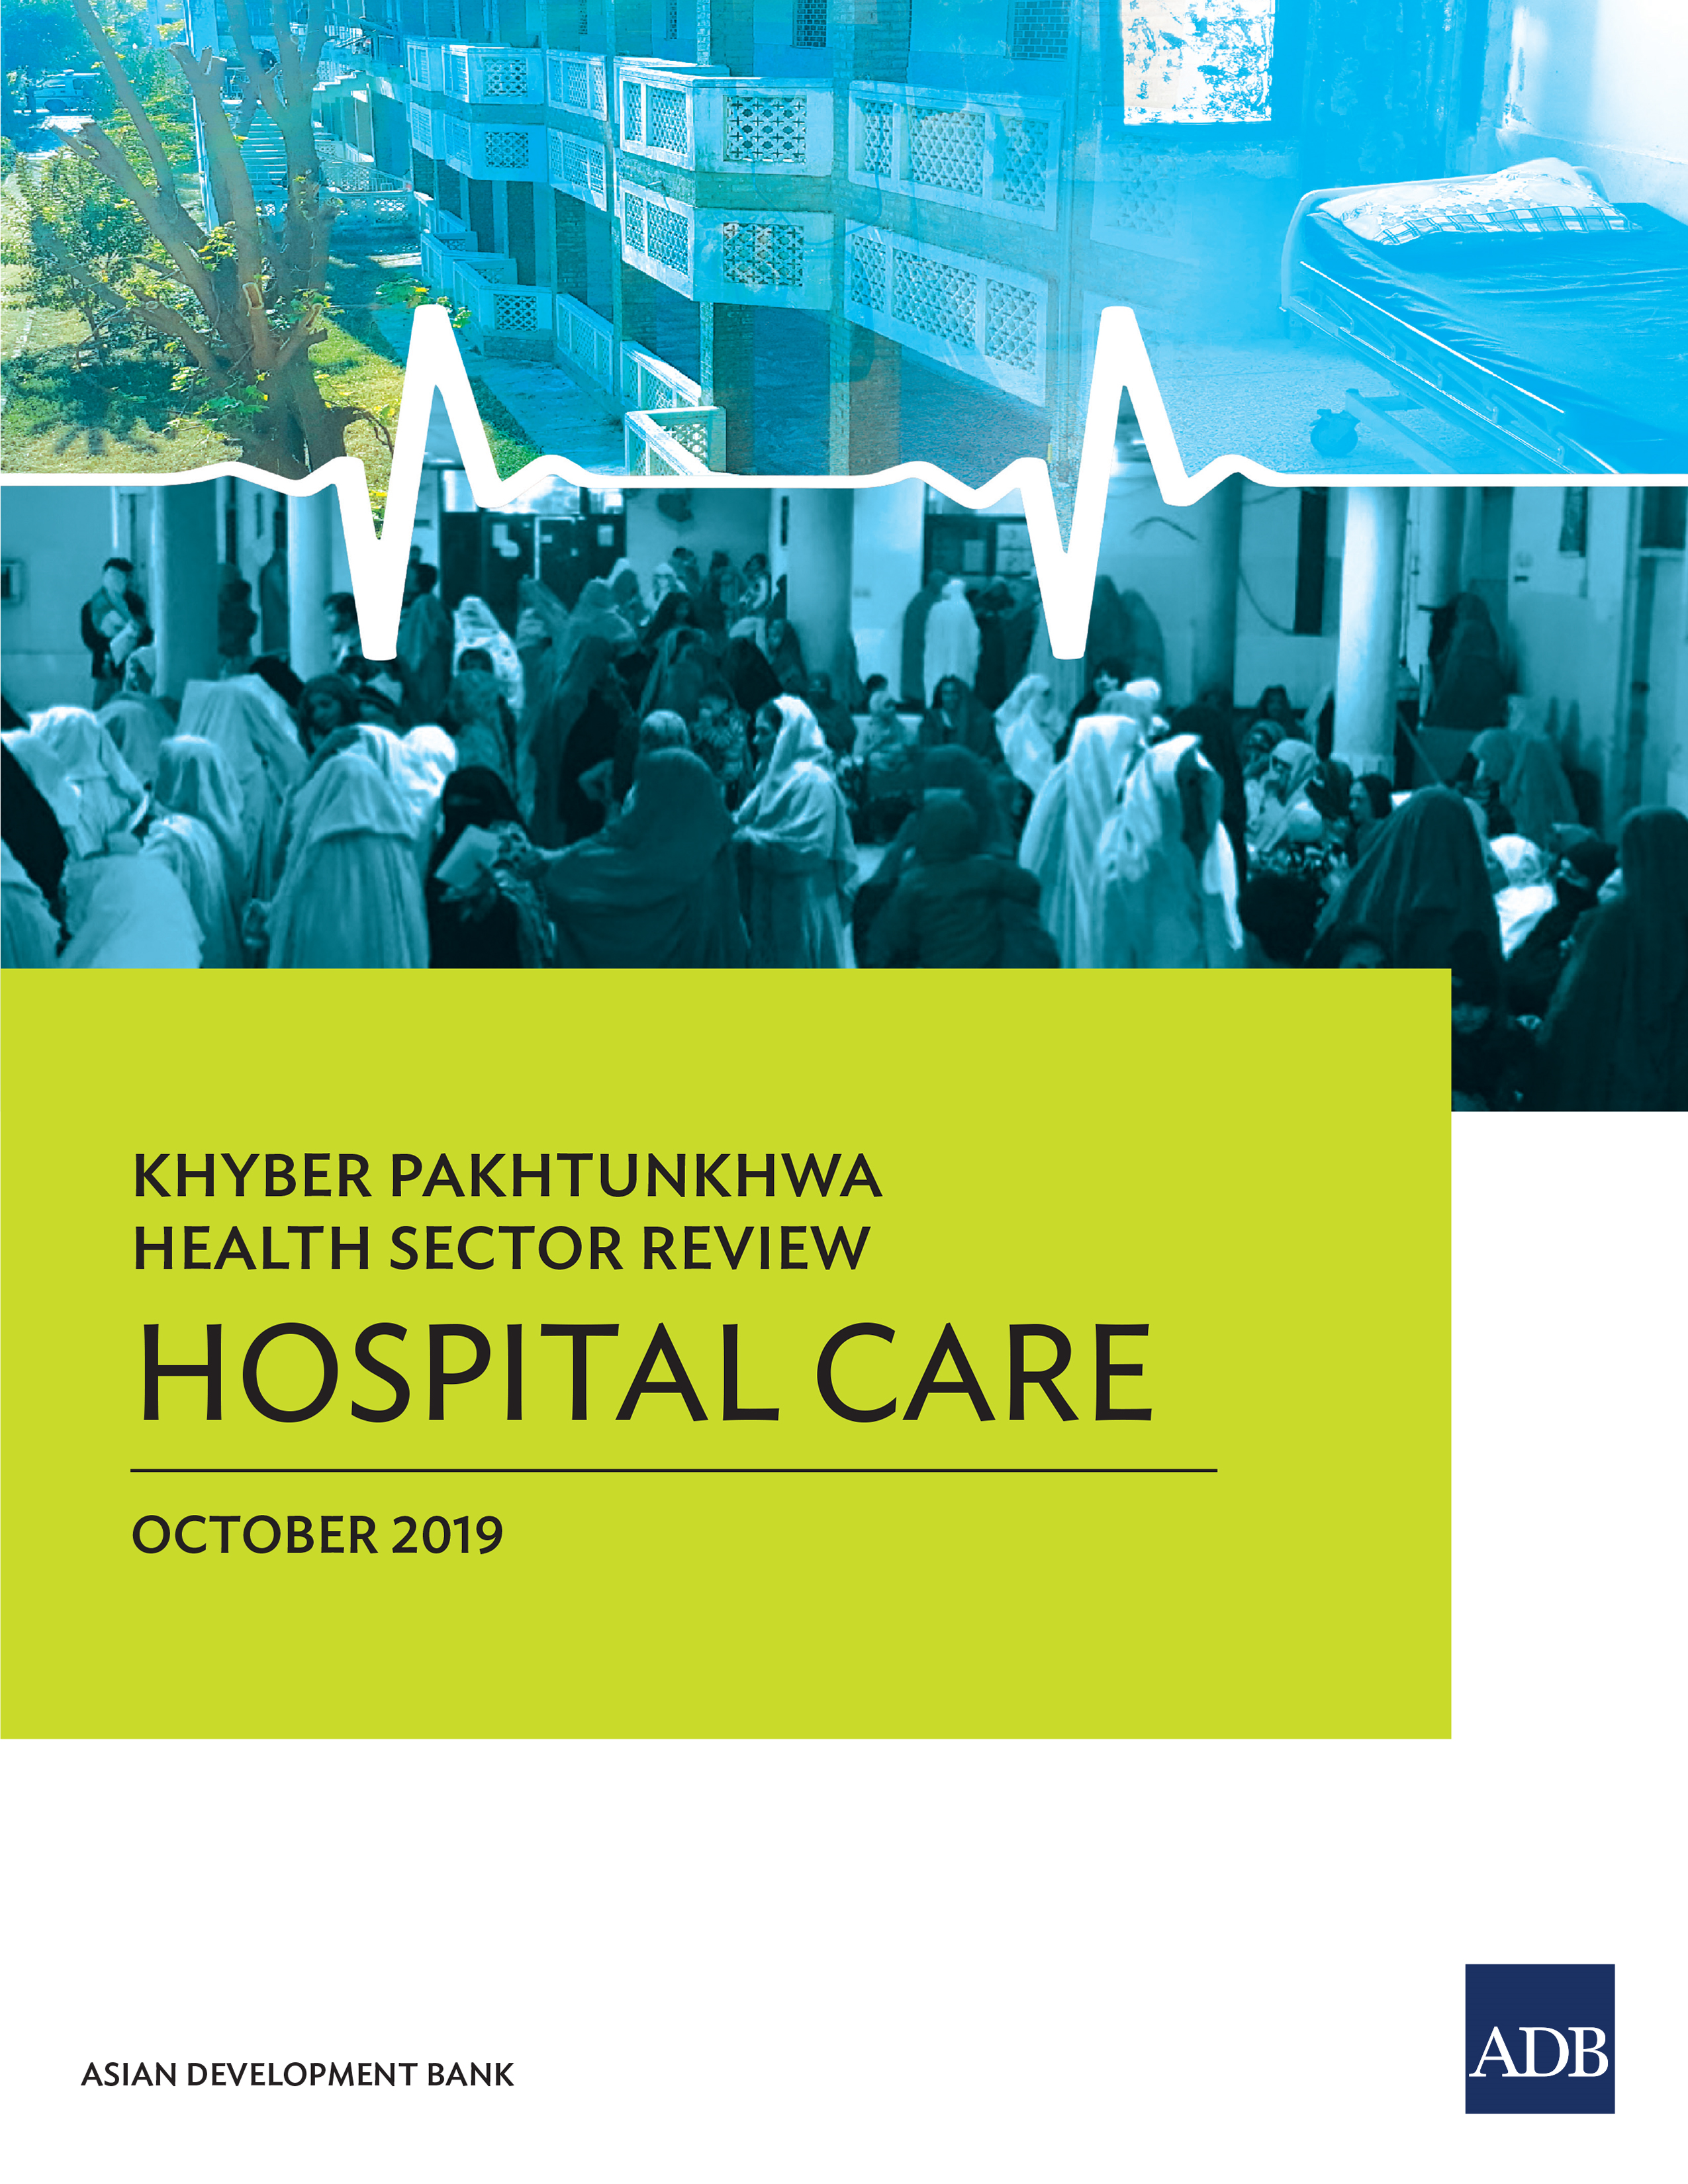 Khyber Pakhtunkhwa Health Sector Review